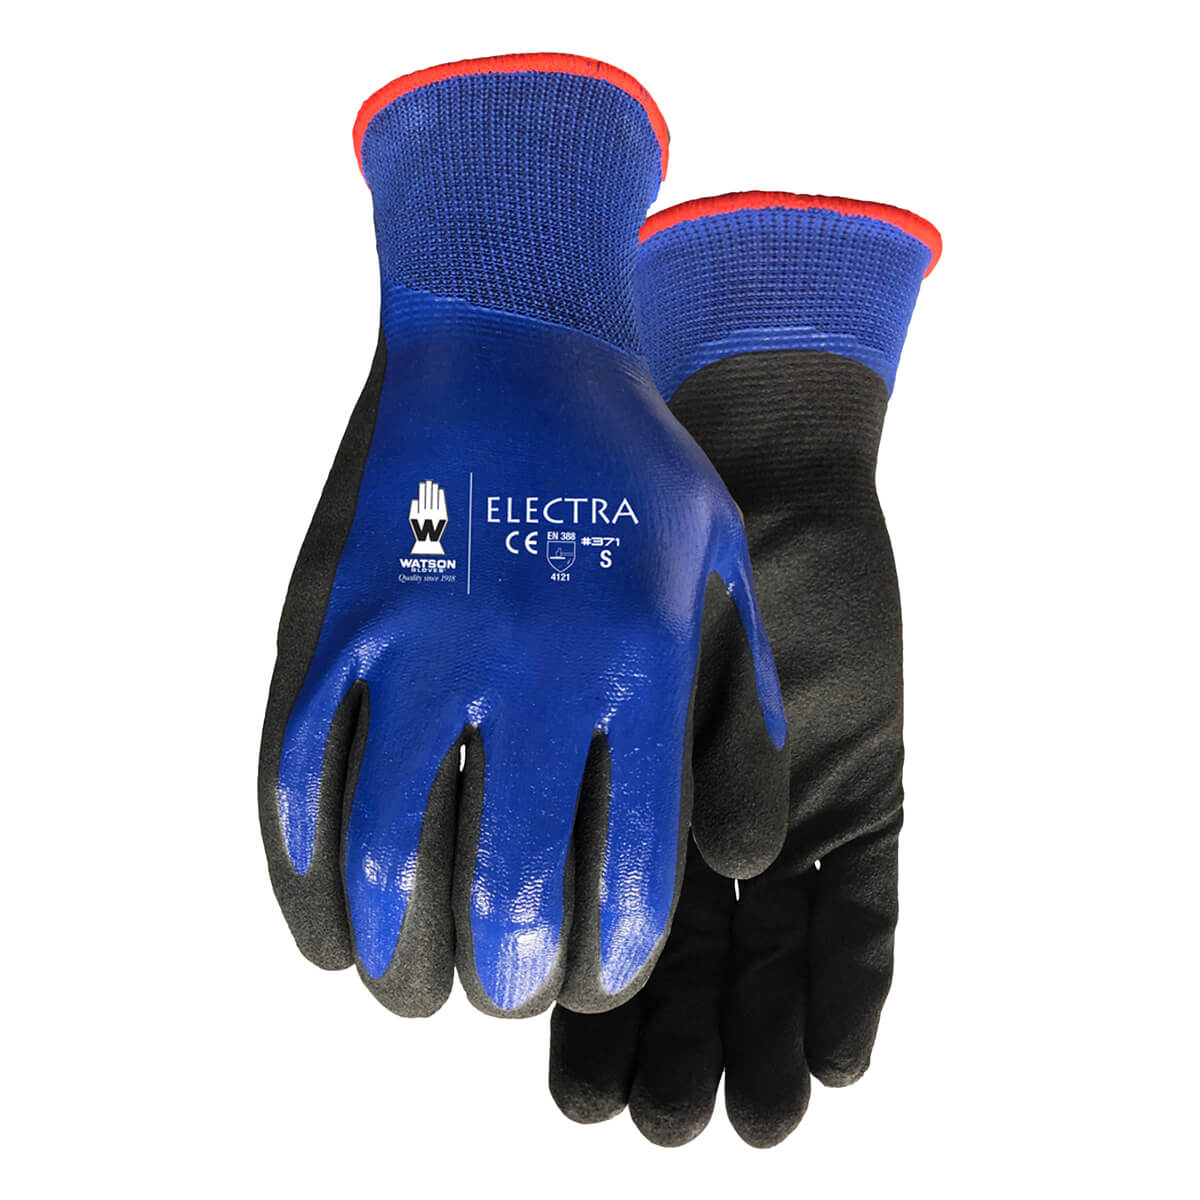 Electra Water Resistant Gloves - M